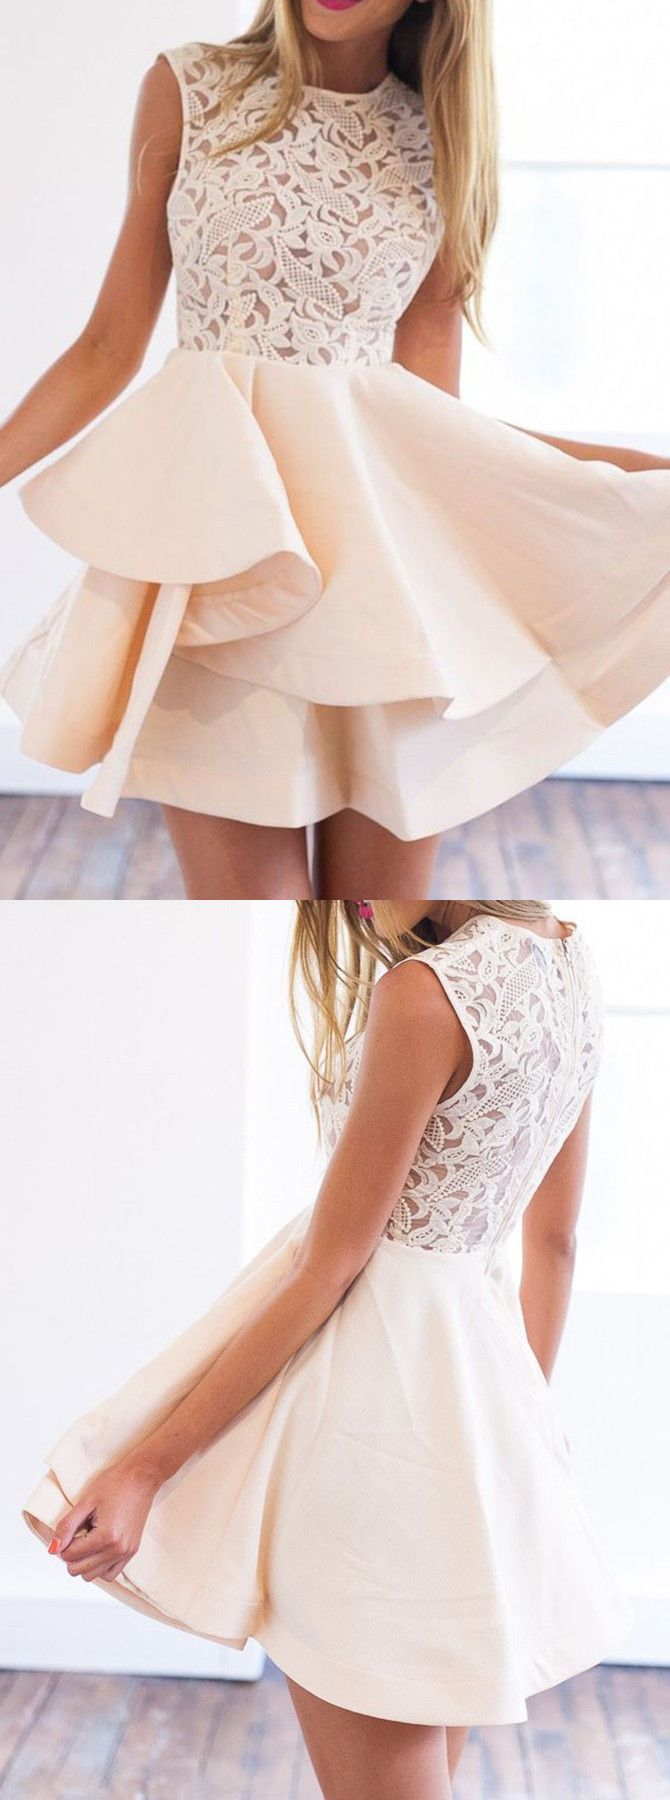 short homecoming dresses,lace homecoming dresses,simple homecoming dresses,cheap homecoming dresses